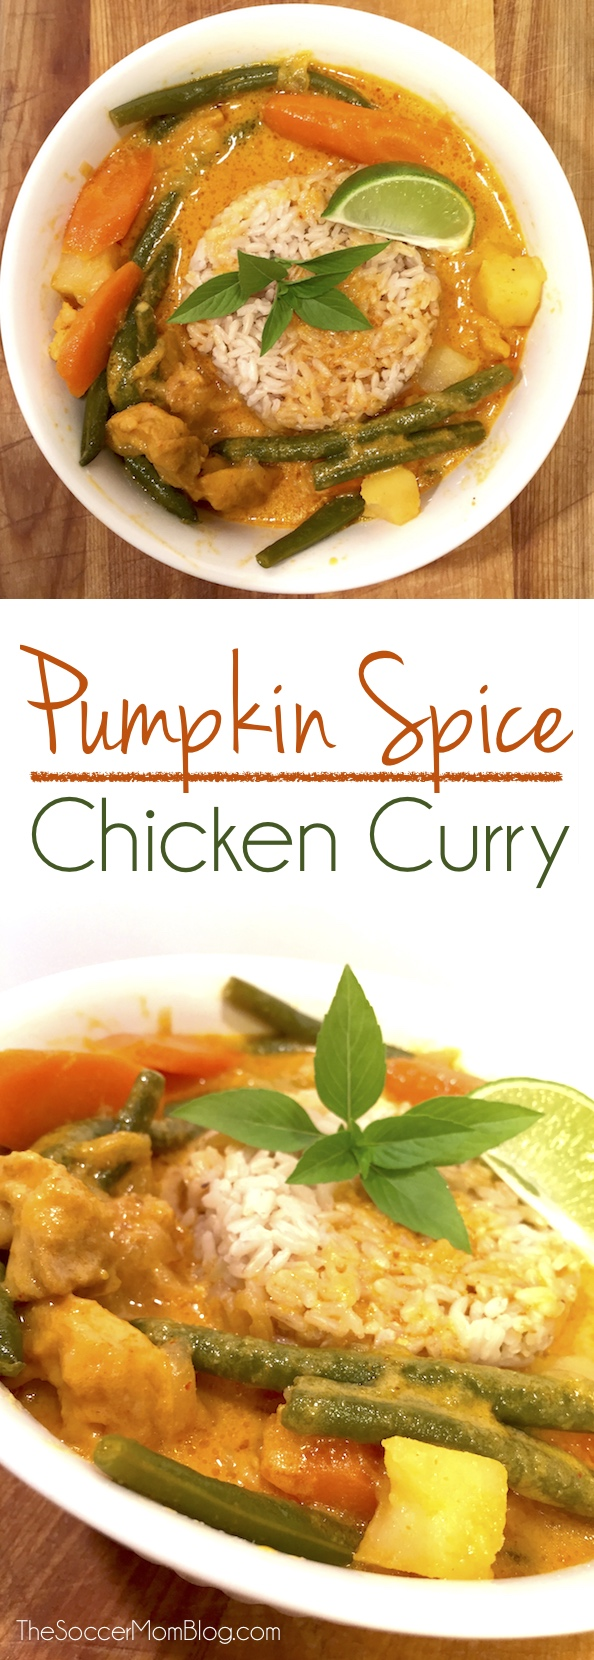 Pumpkin Spice Chicken Curry is the perfectly unexpected combination of Fall flavors. Rich, creamy, sweet, and spicy - this recipe will knock your socks off! (ad) #Treats4All